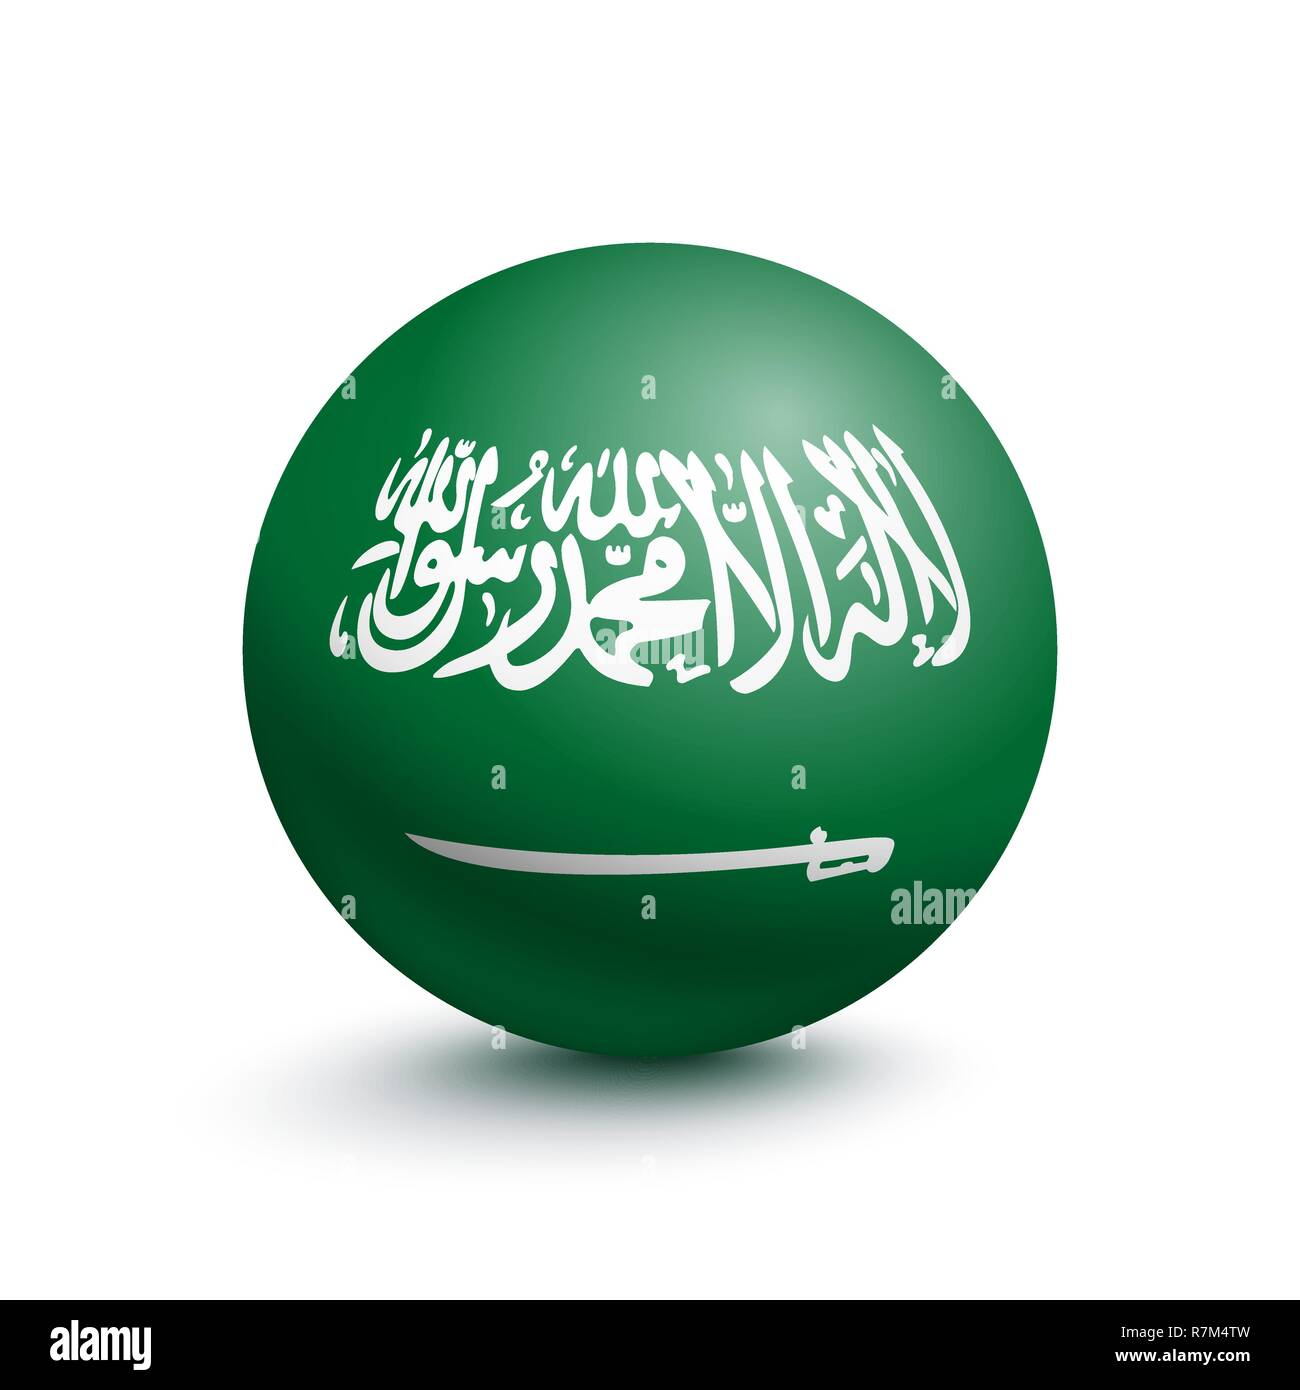 Flag of Saudi Arabia in the form of a ball - Stock Image